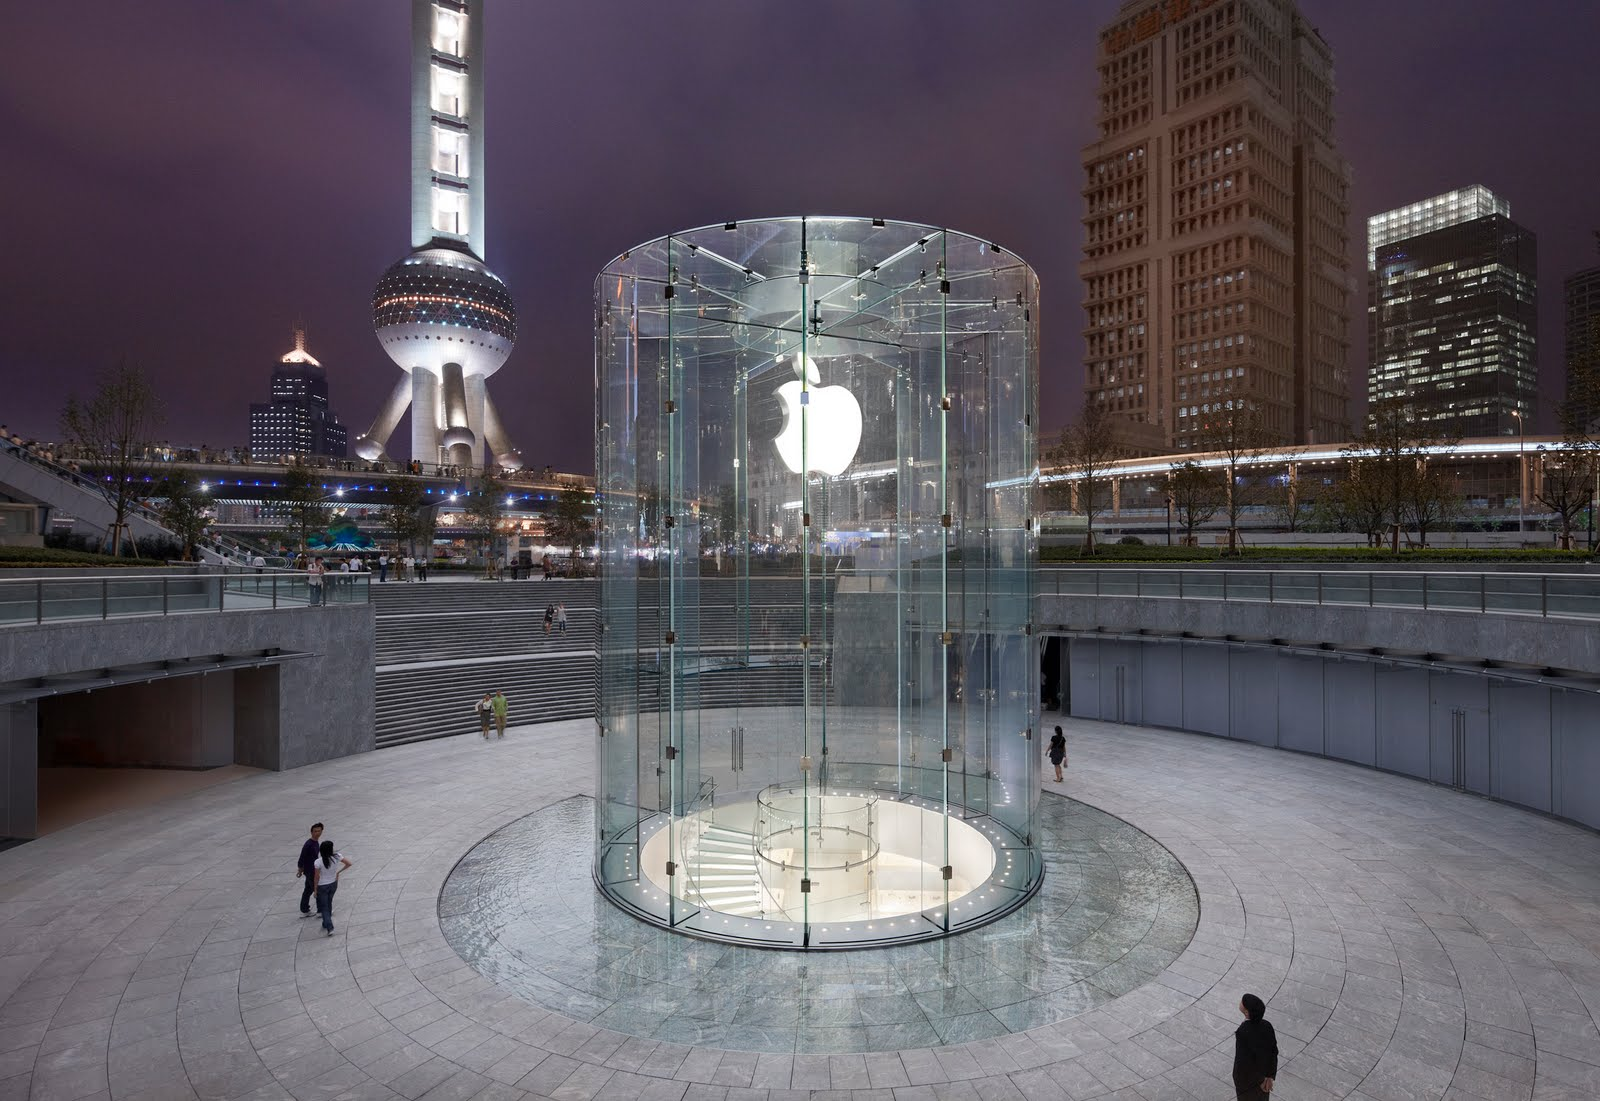 Opening weekend at Apple's Shanghai store drew 100,000 visitors